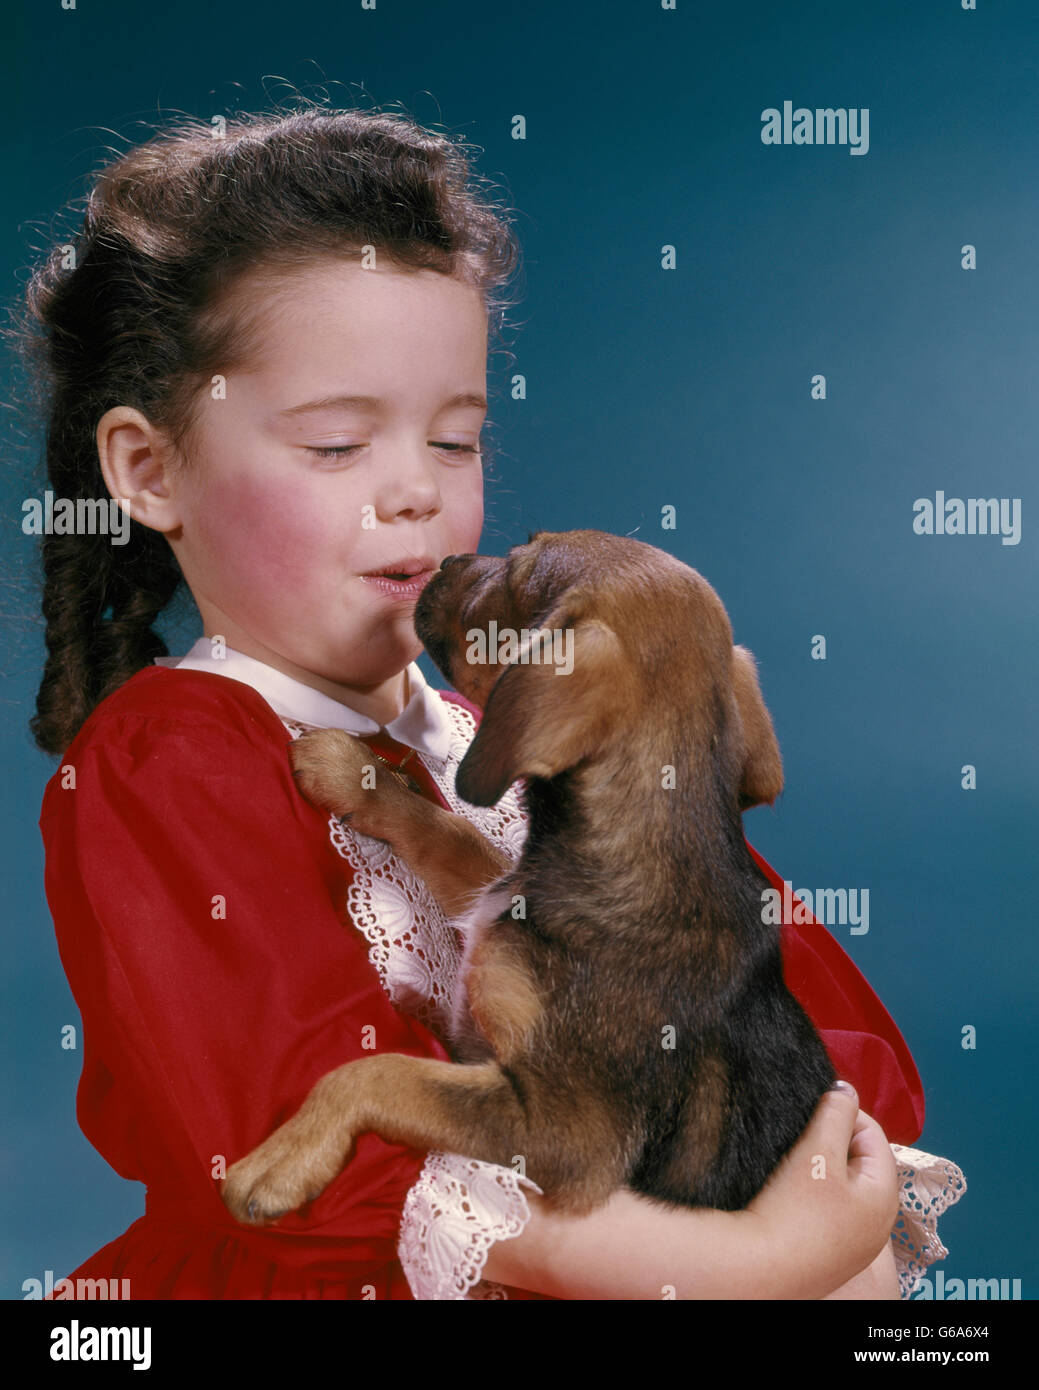 1960 LITTLE GIRL KISSING HER BEAGLE PUPPY Photo Stock